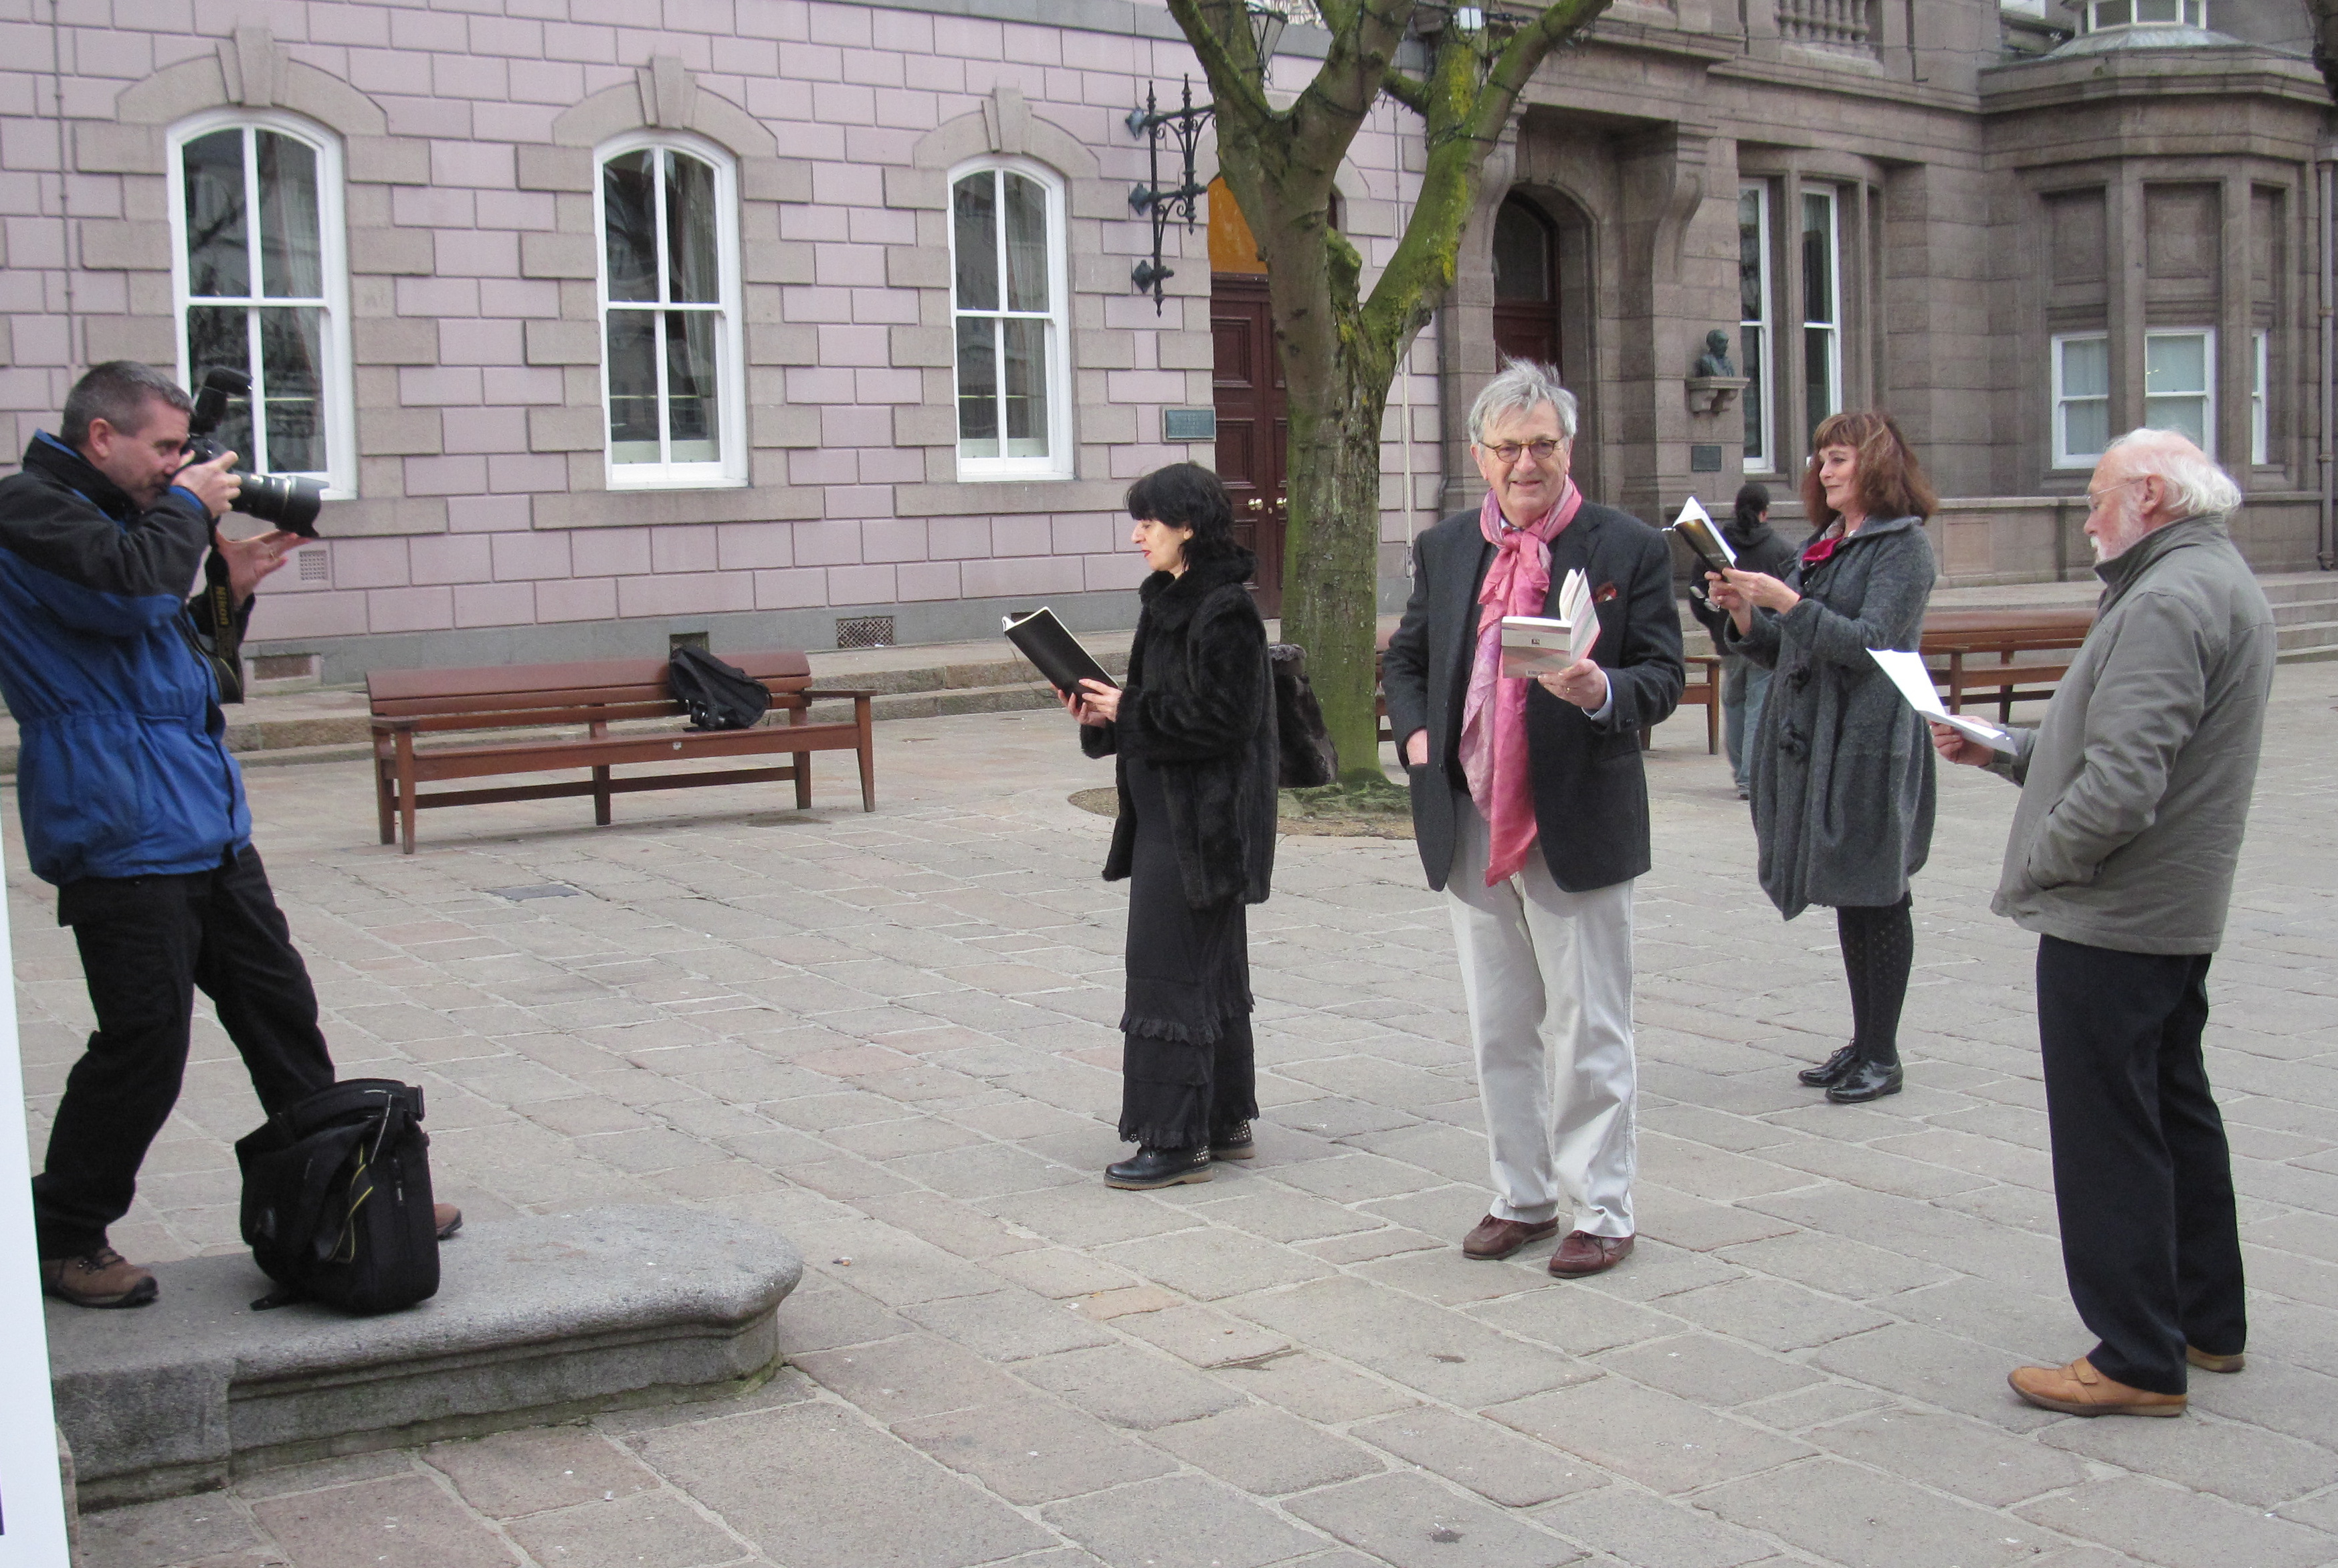 Http Commons Wikimedia Org Wiki File Poetry In Public Places Saint Helier Jersey 2013 3 Jpg